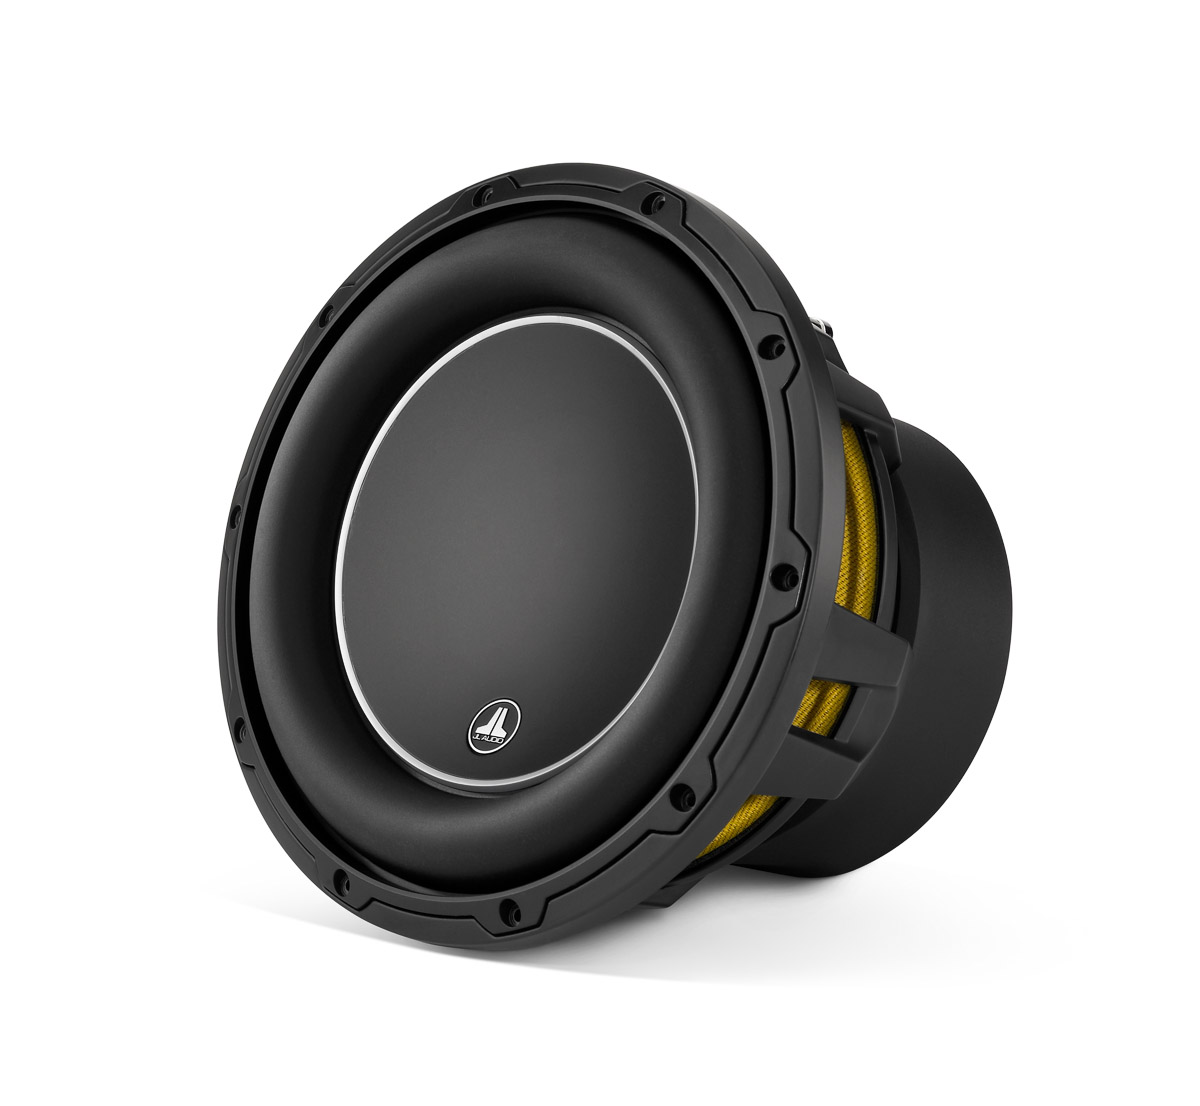 small resolution of 10w6v3 d4 10 inch 250 mm subwoofer driver dual 4